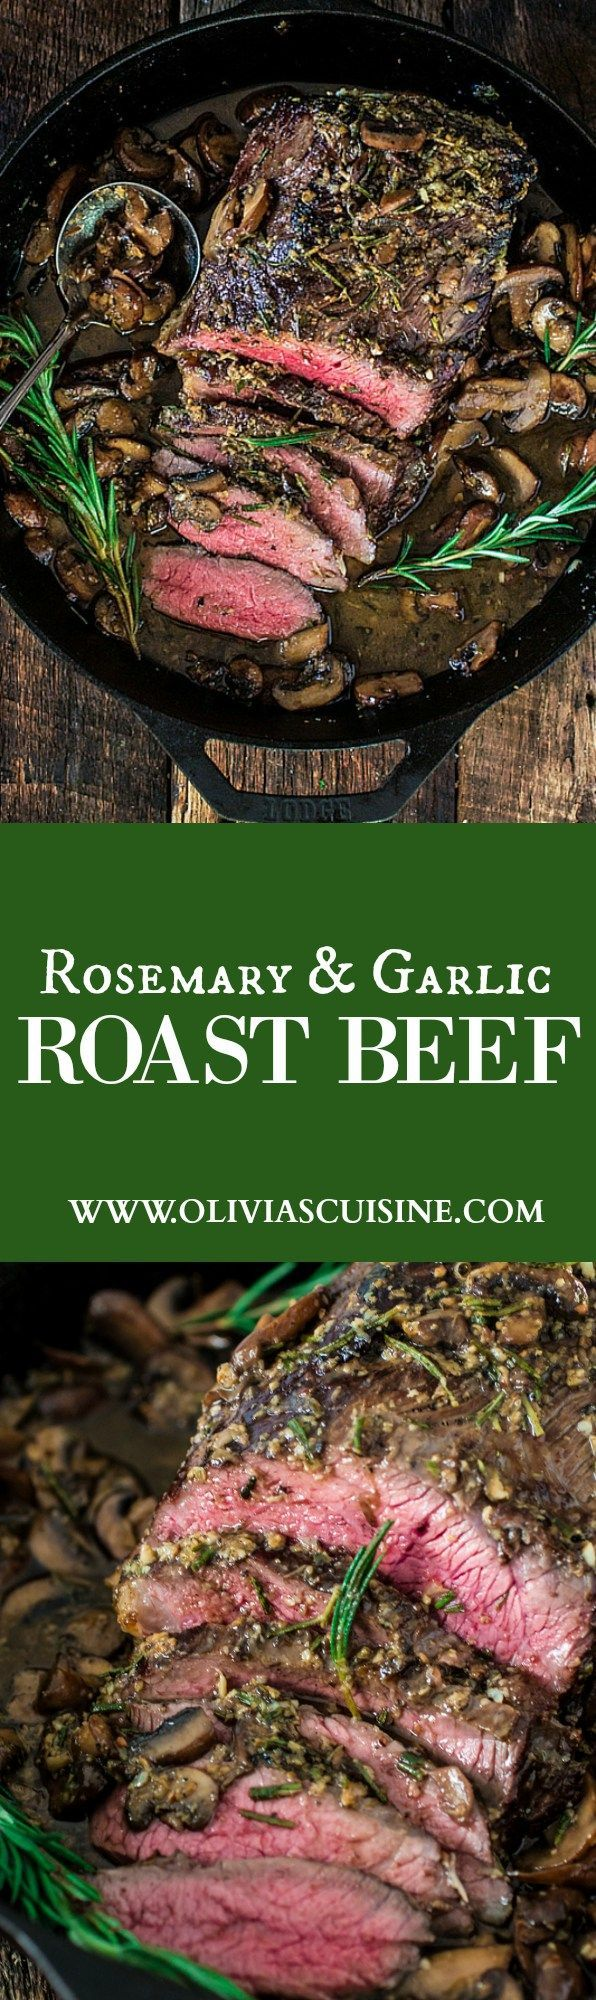 Rosemary and Garlic Roast Beef | http://www.oliviascuisine.com | Wow your dinner guests with this aromatic rosemary and garlic roast that is so simple to make